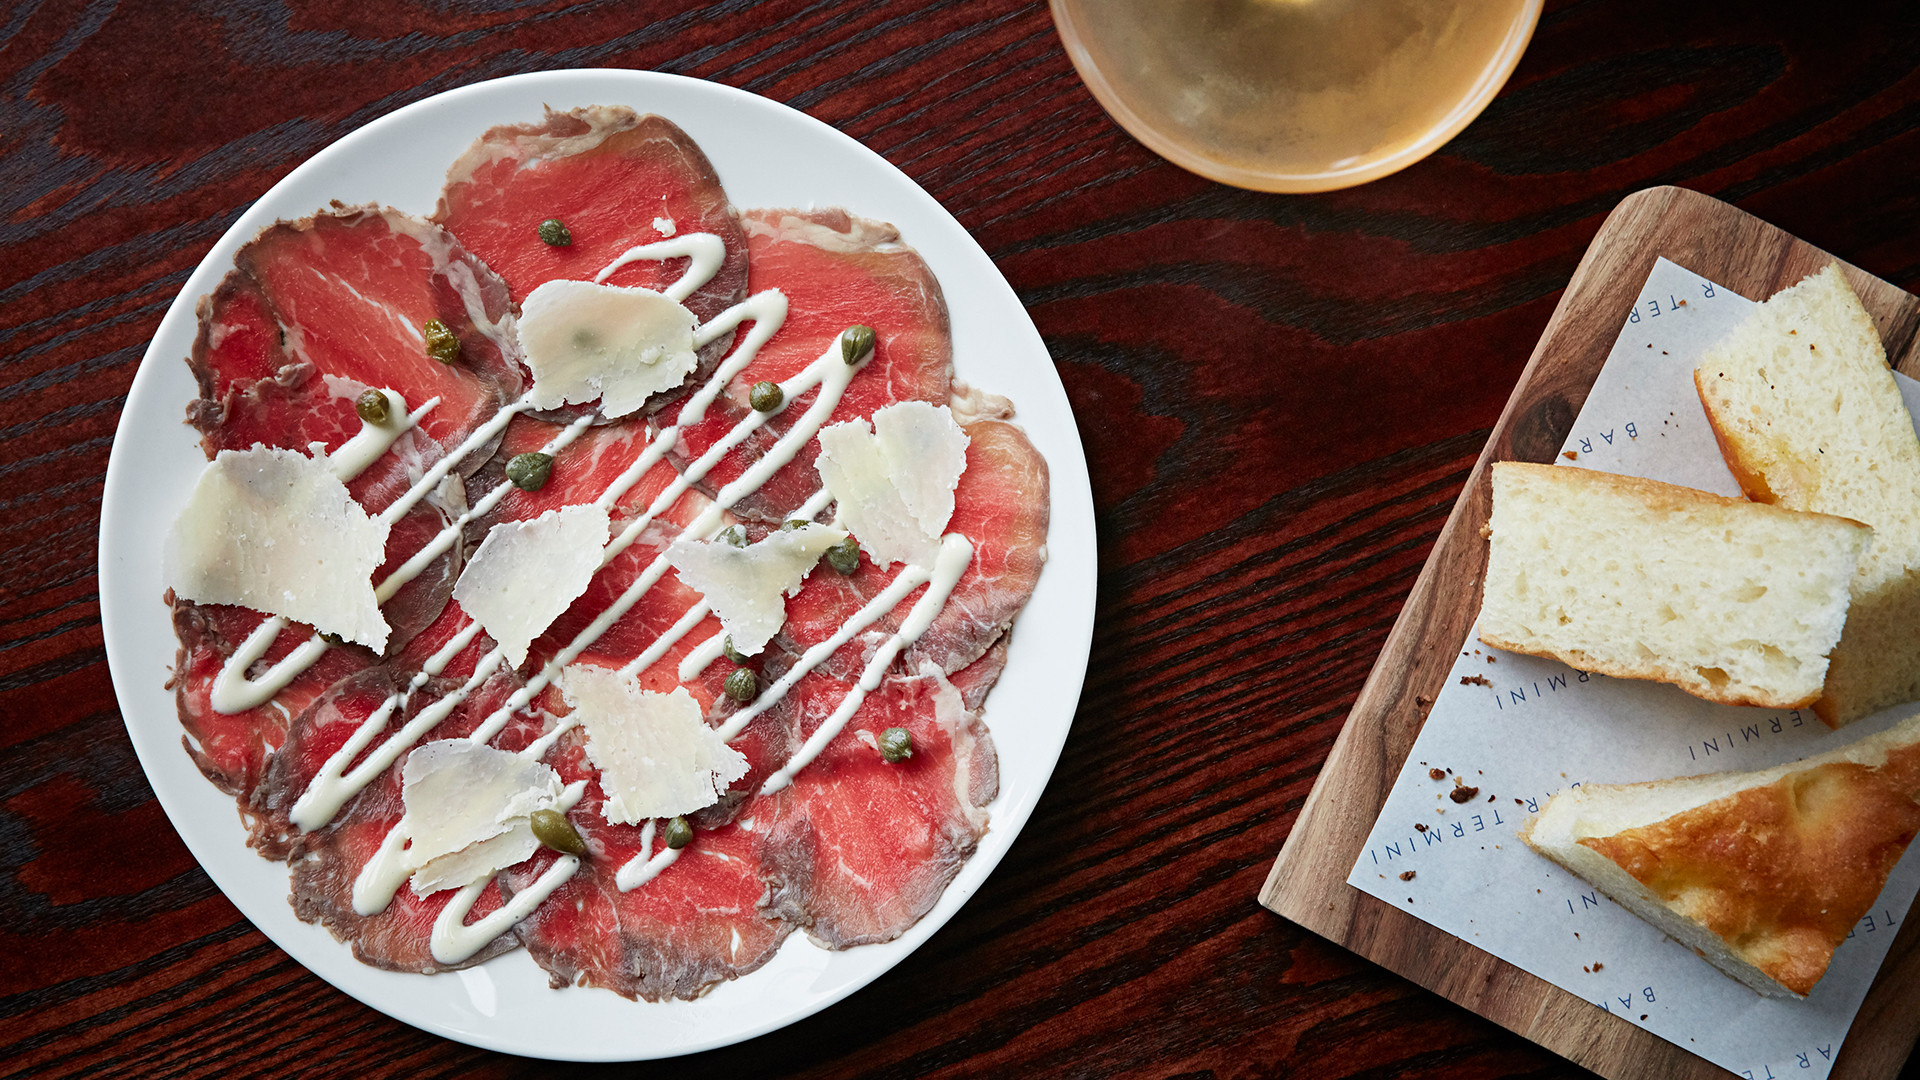 Beef carpaccio at Bar Termini